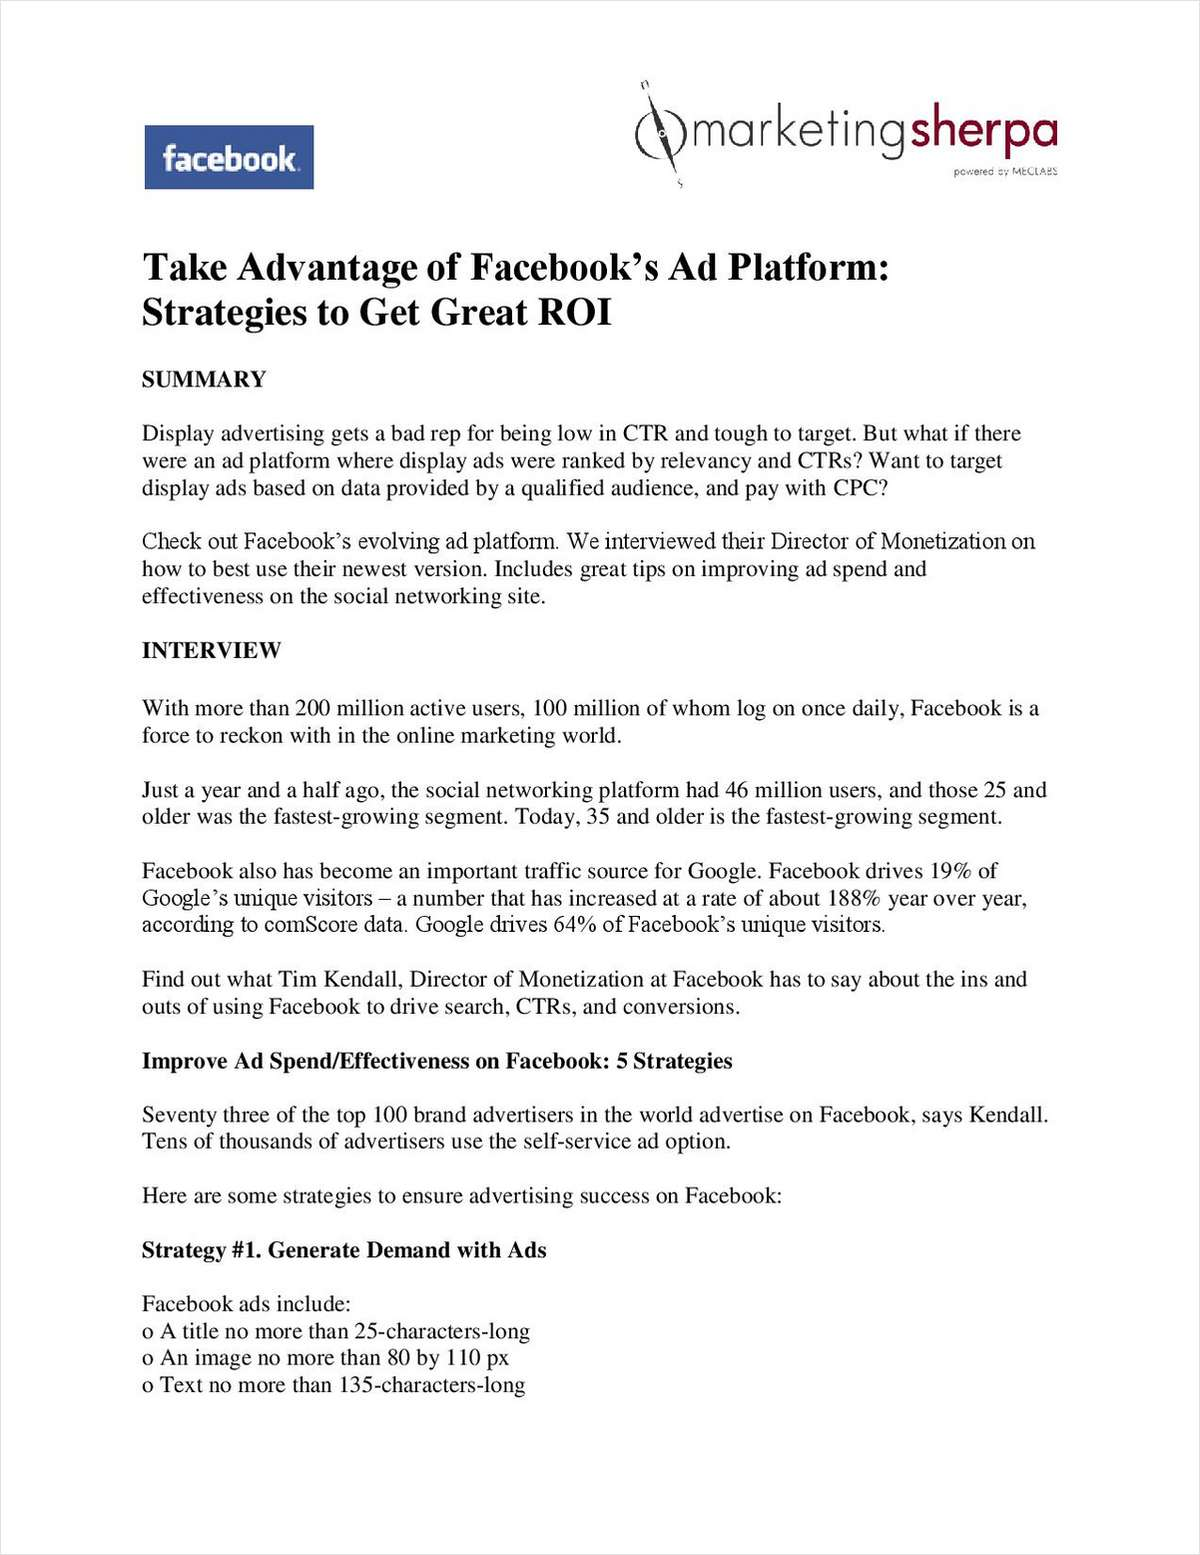 Take Advantage of Facebook's Ad Platform: Strategies to Get Great ROI (from MarketingSherpa)